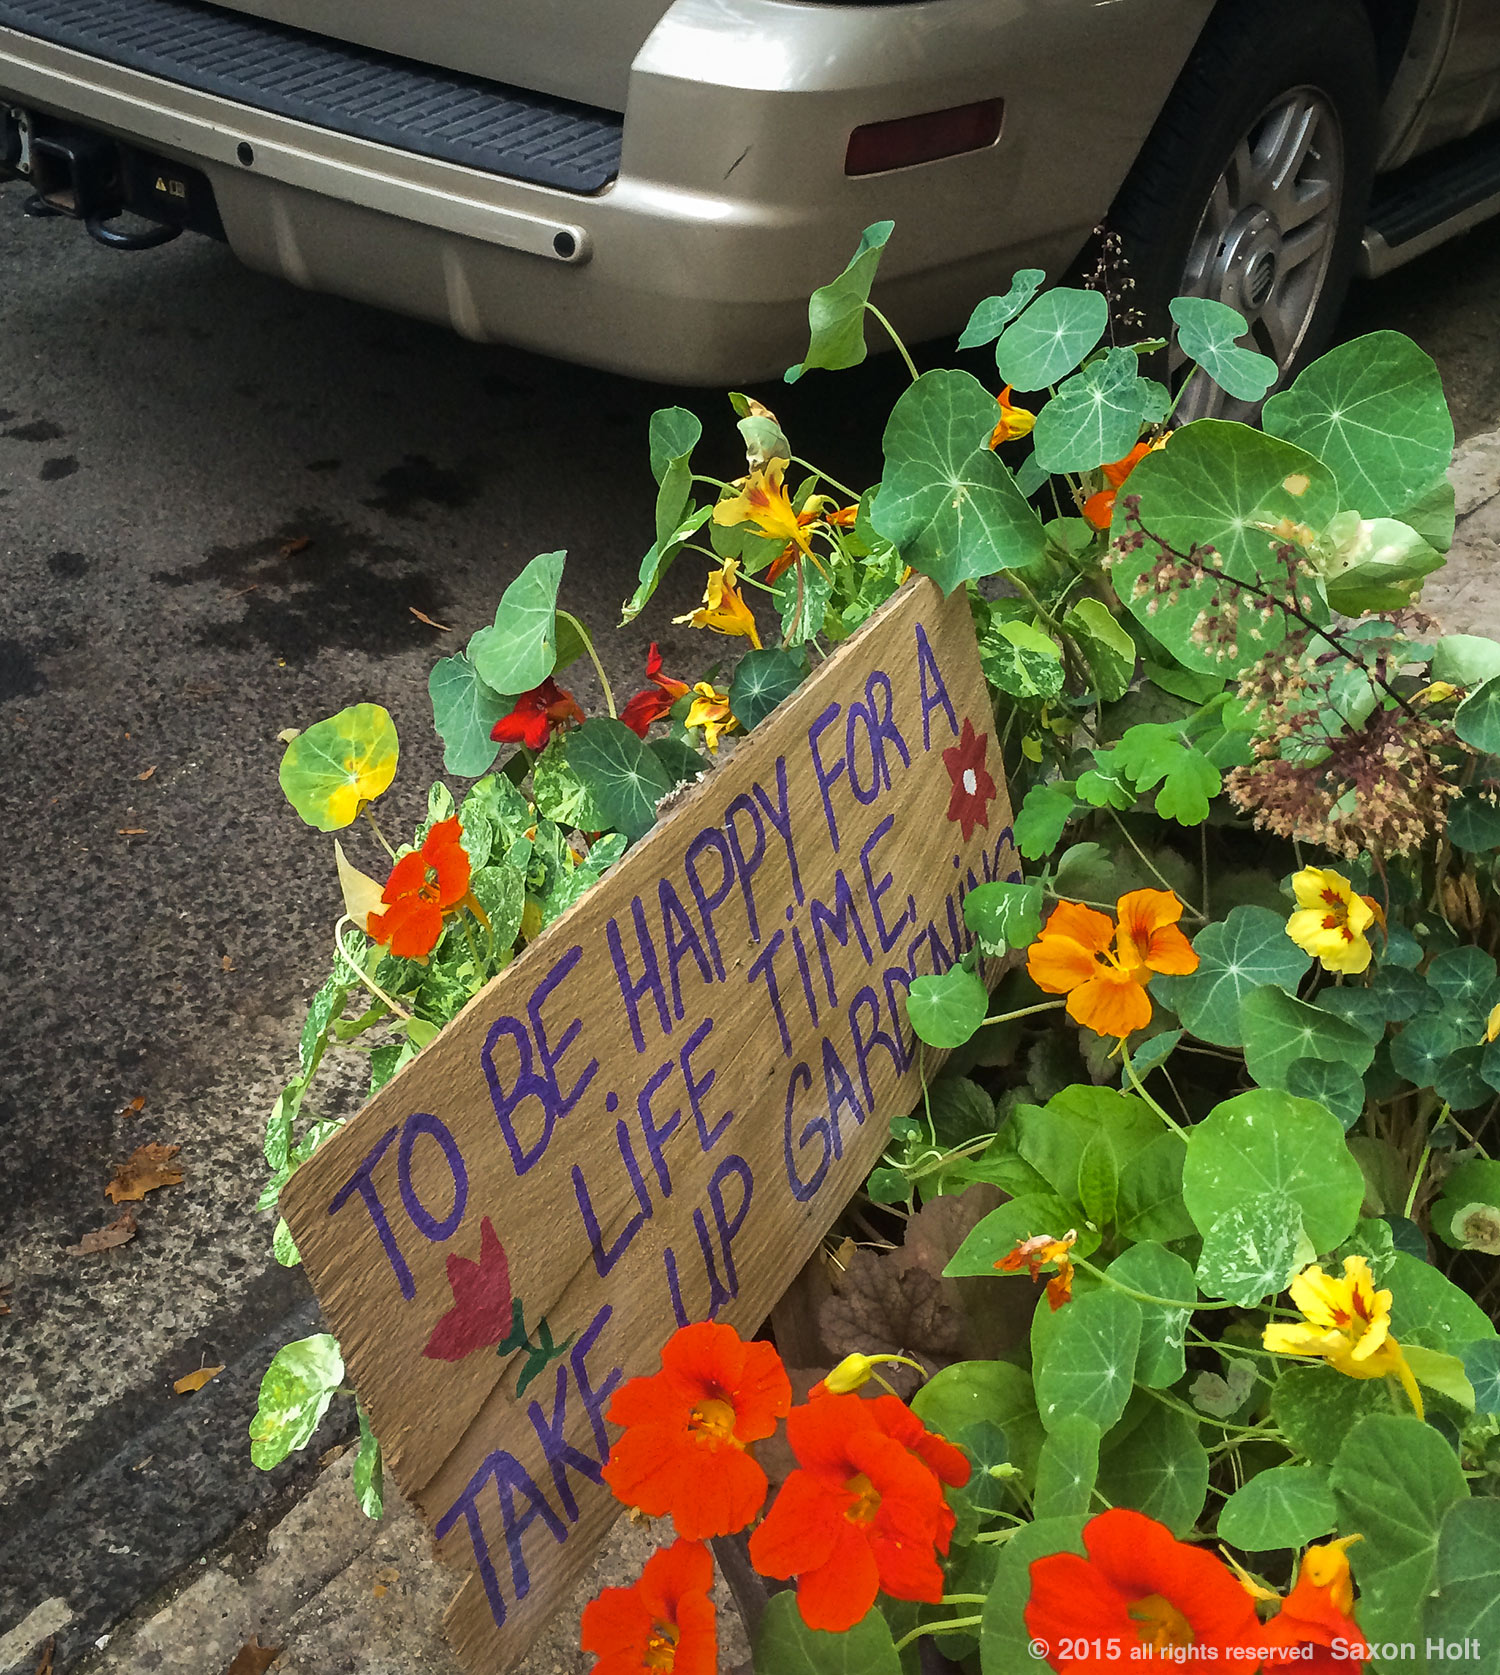 Gardener's street sign,take up gardening, Brooklyn